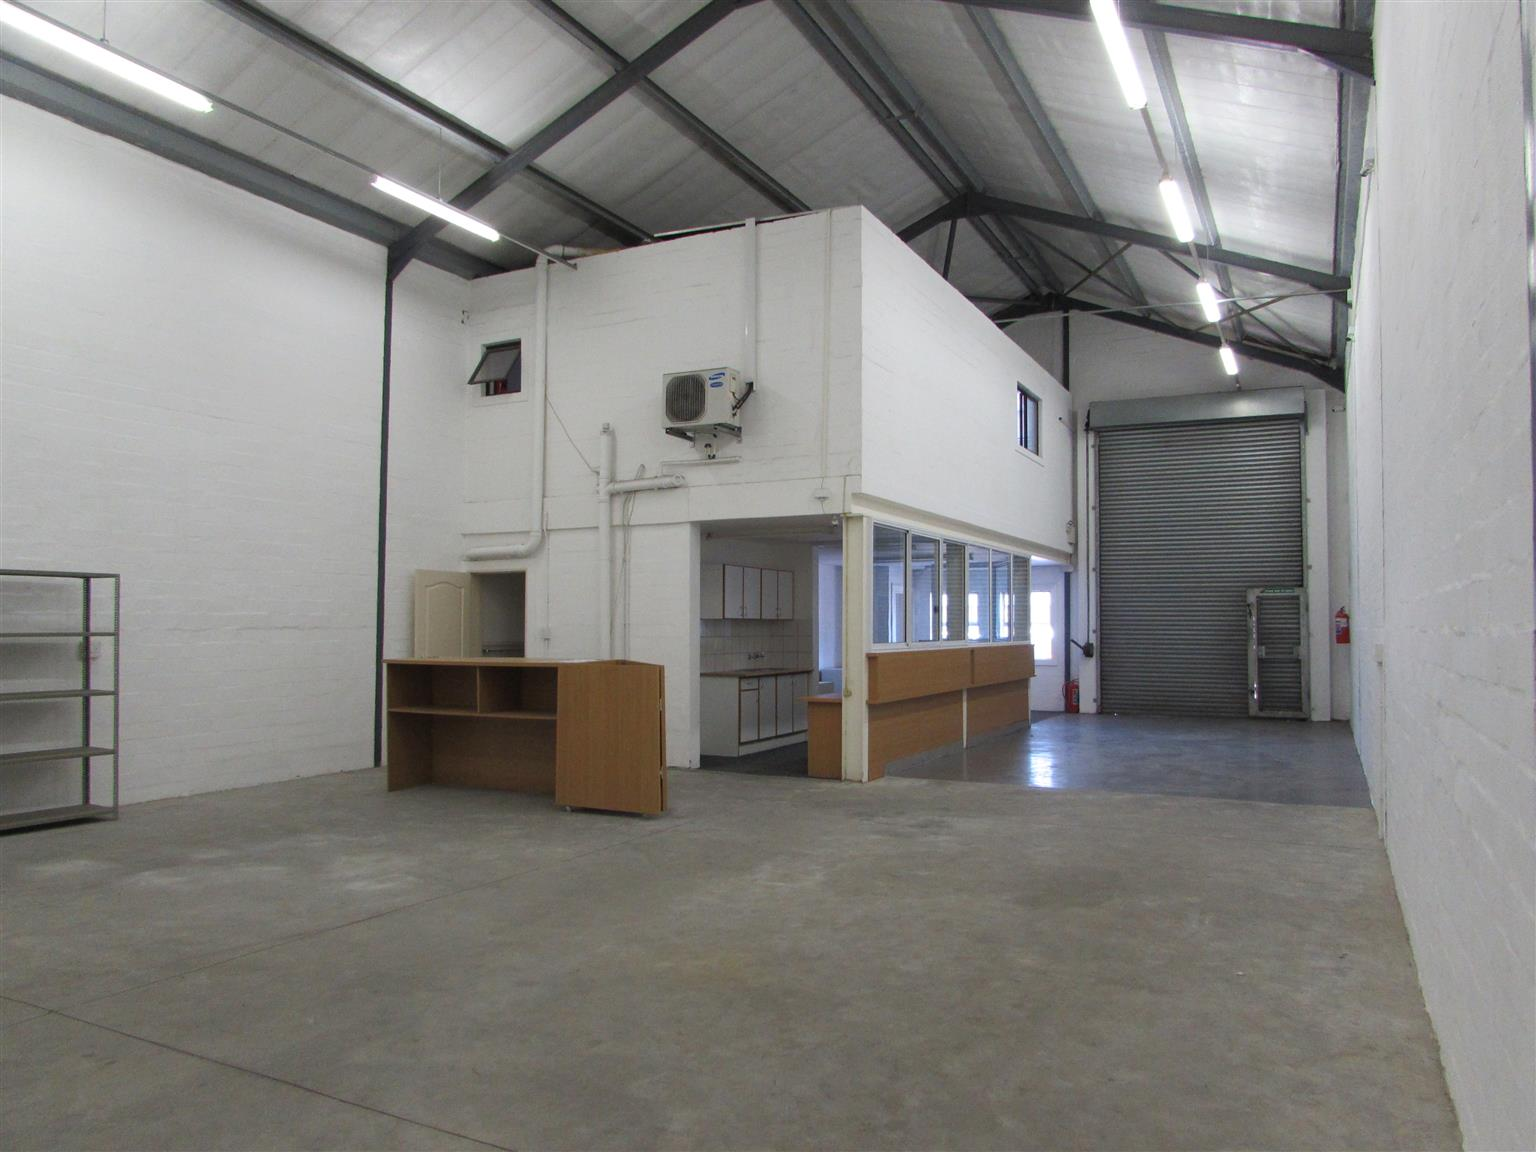 MONTAGUE GARDENS: 220m2 Warehouse To Let